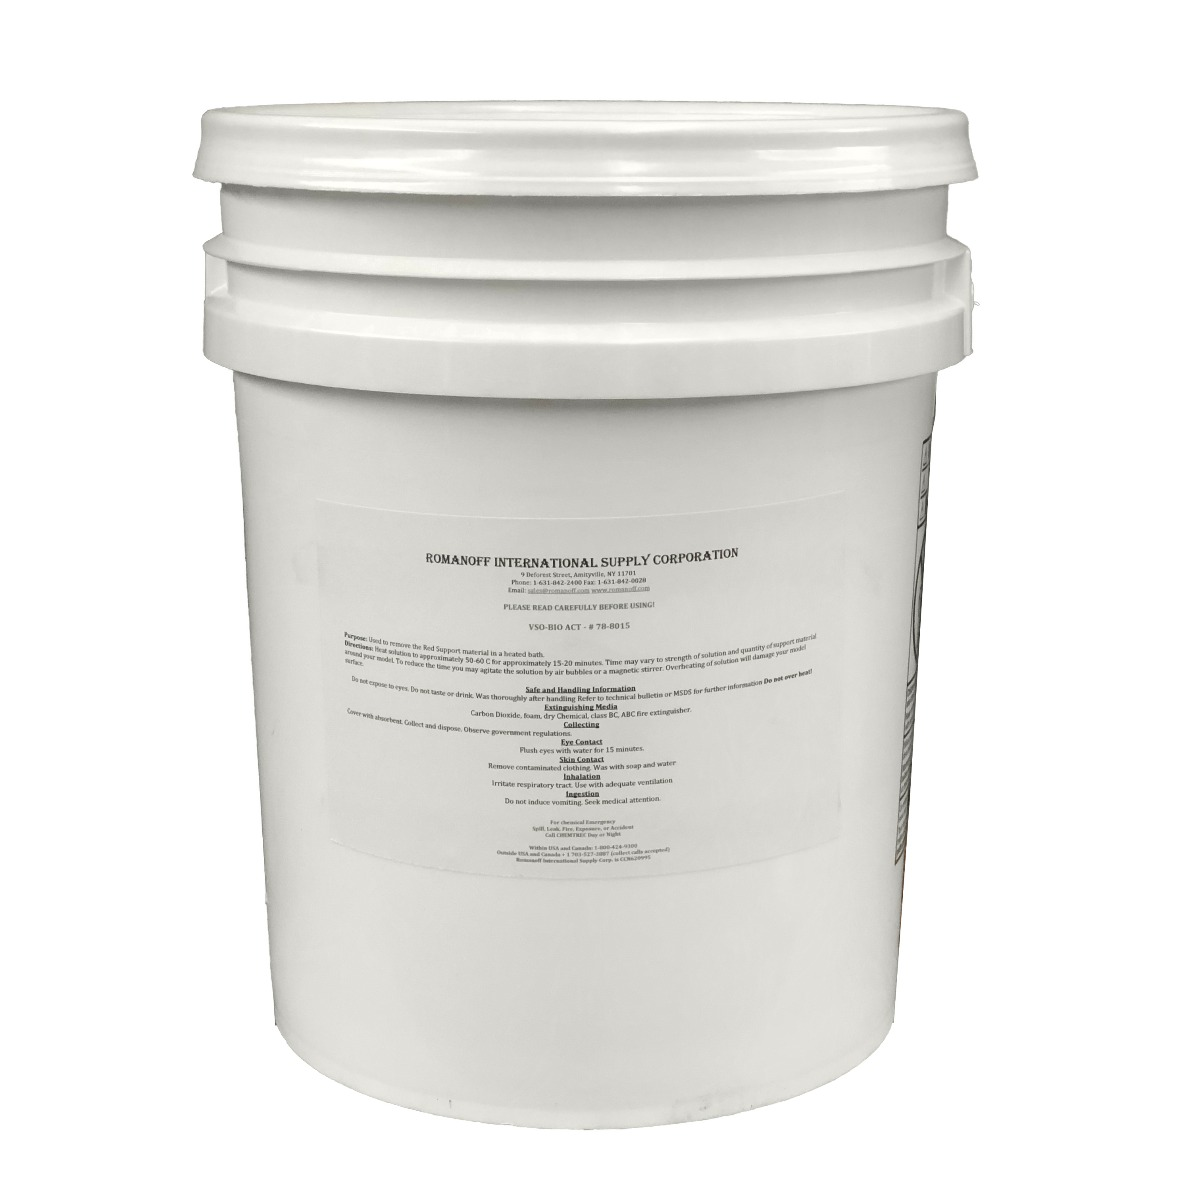 Solidscape - VSO BioAct (5 Gallon)